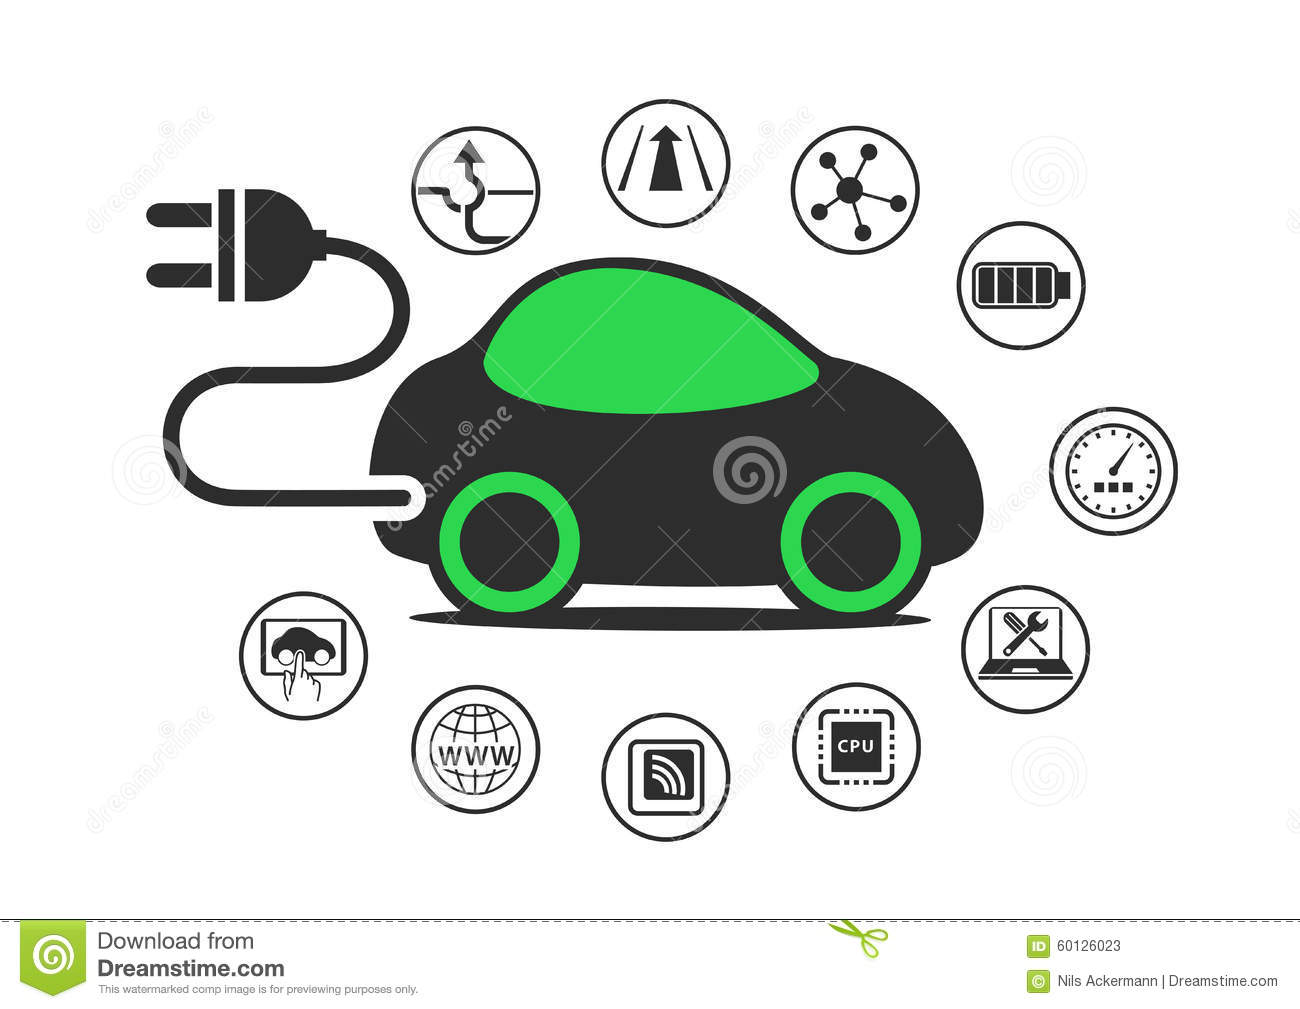 1108644 what The Tesla Logo Means Ceo Elon Musk Explains likewise 2017 Hybrid Electric Cars Survey Results moreover Ev Charging Ford also Looking Ev Charging Stations Uk Zap Map Has You Covered further Nz electric car guide. on electric car plug in stations